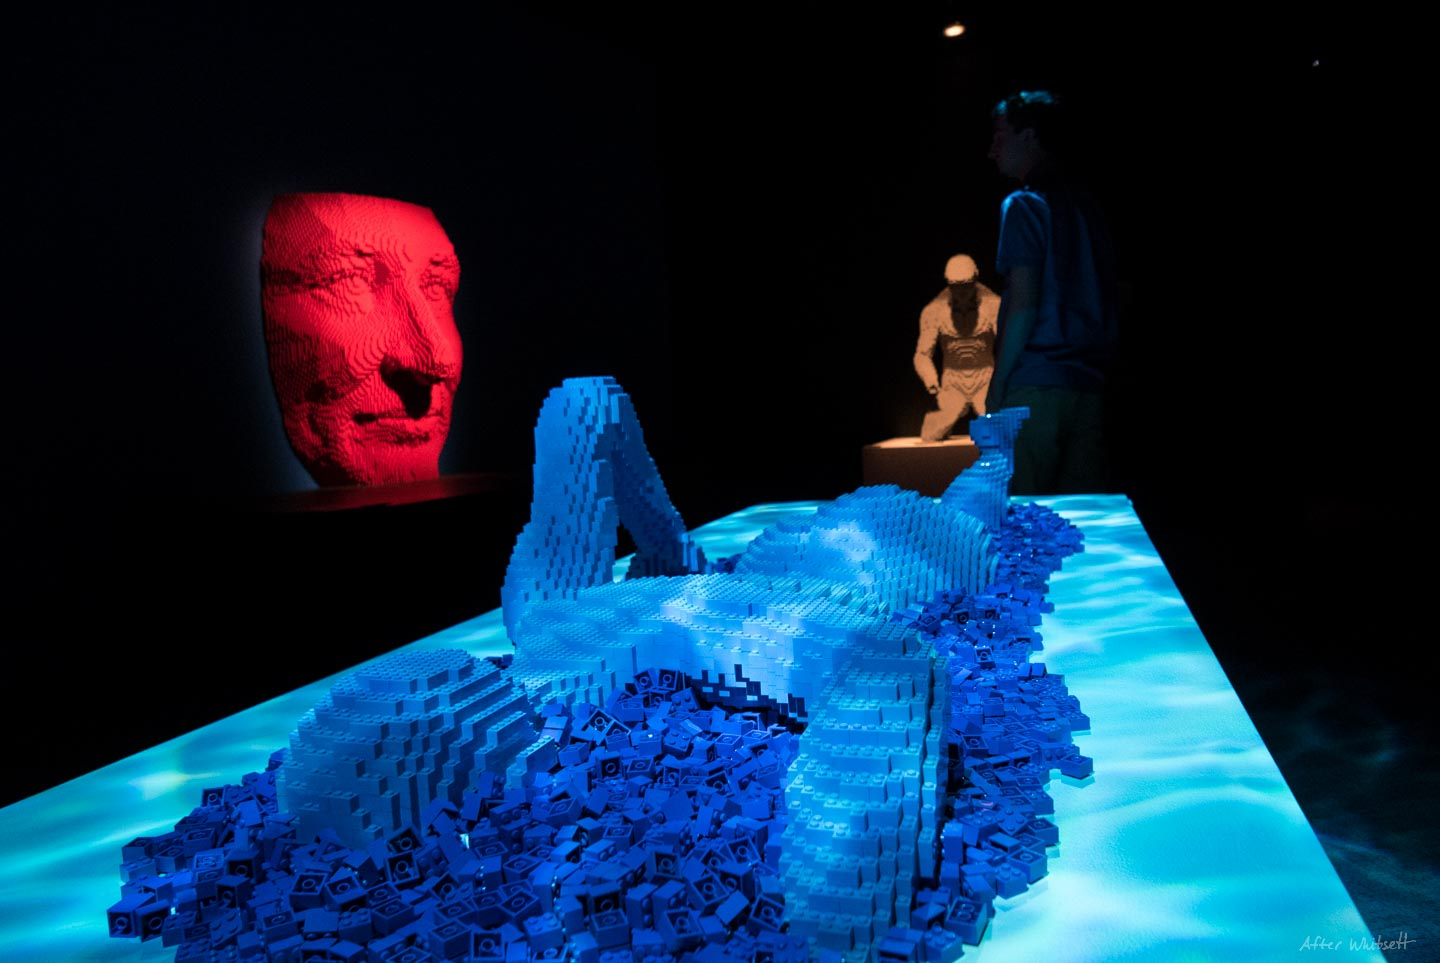 LEGOs as Art? Why You Can't Miss The Art of the Brick